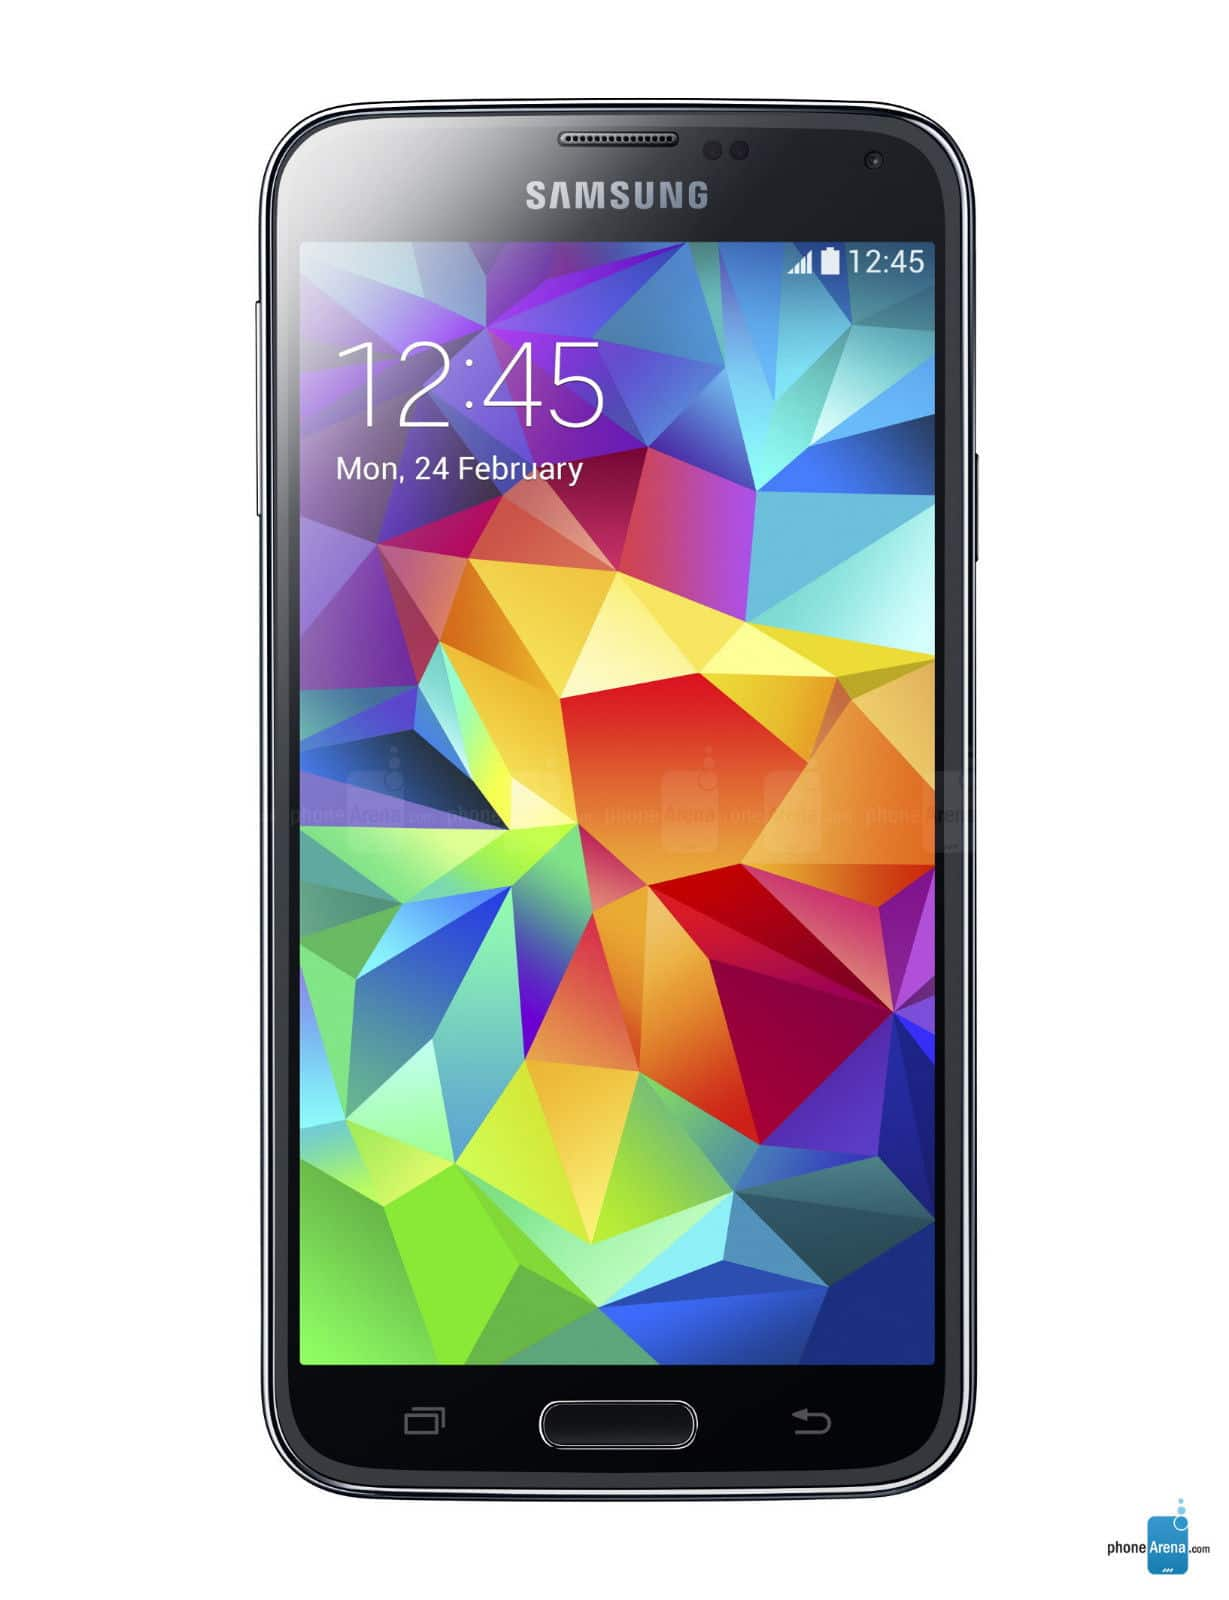 16GB Samsung Galaxy S5 SM-G900A 4G LTE Unlocked in White or Black (New) $315 AC + Free Shipping!